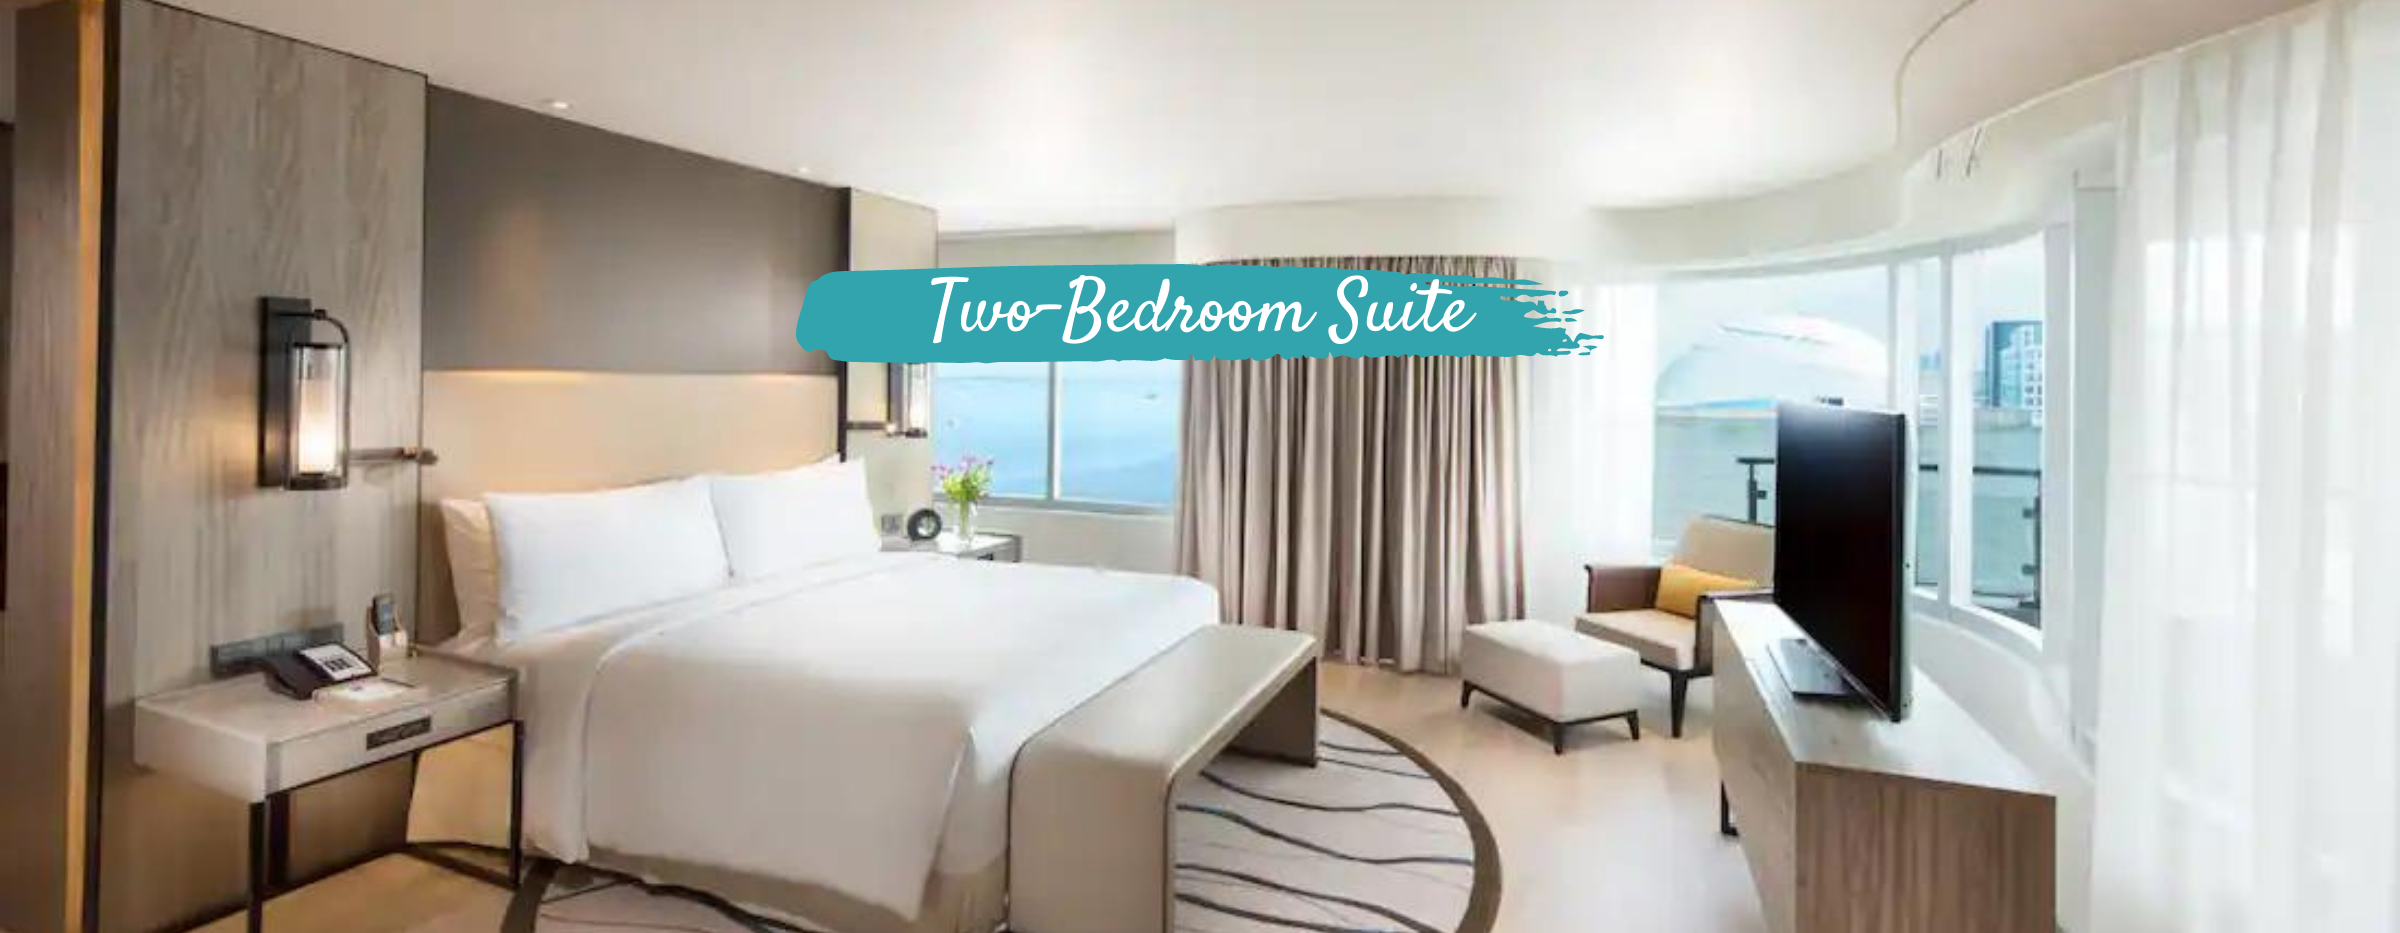 Conrad Hotel Two Bedroom Suite   Vancouver to MNL Philippine Airlines Quarantine Package